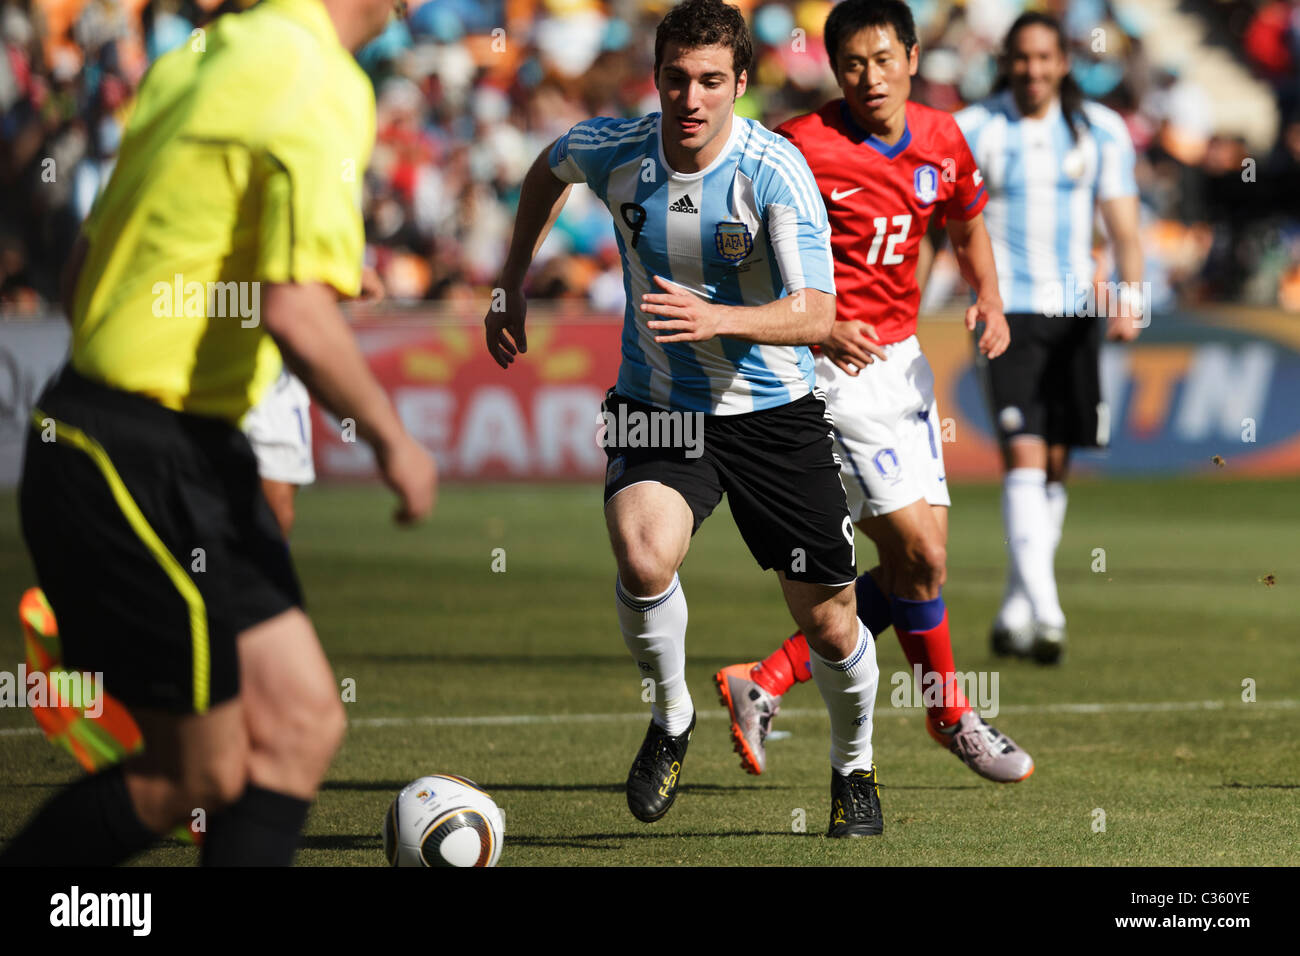 Gonzalo Higuain of Argentina chases the ball during a FIFA World Cup football match against South Korea June 17, - Stock Image